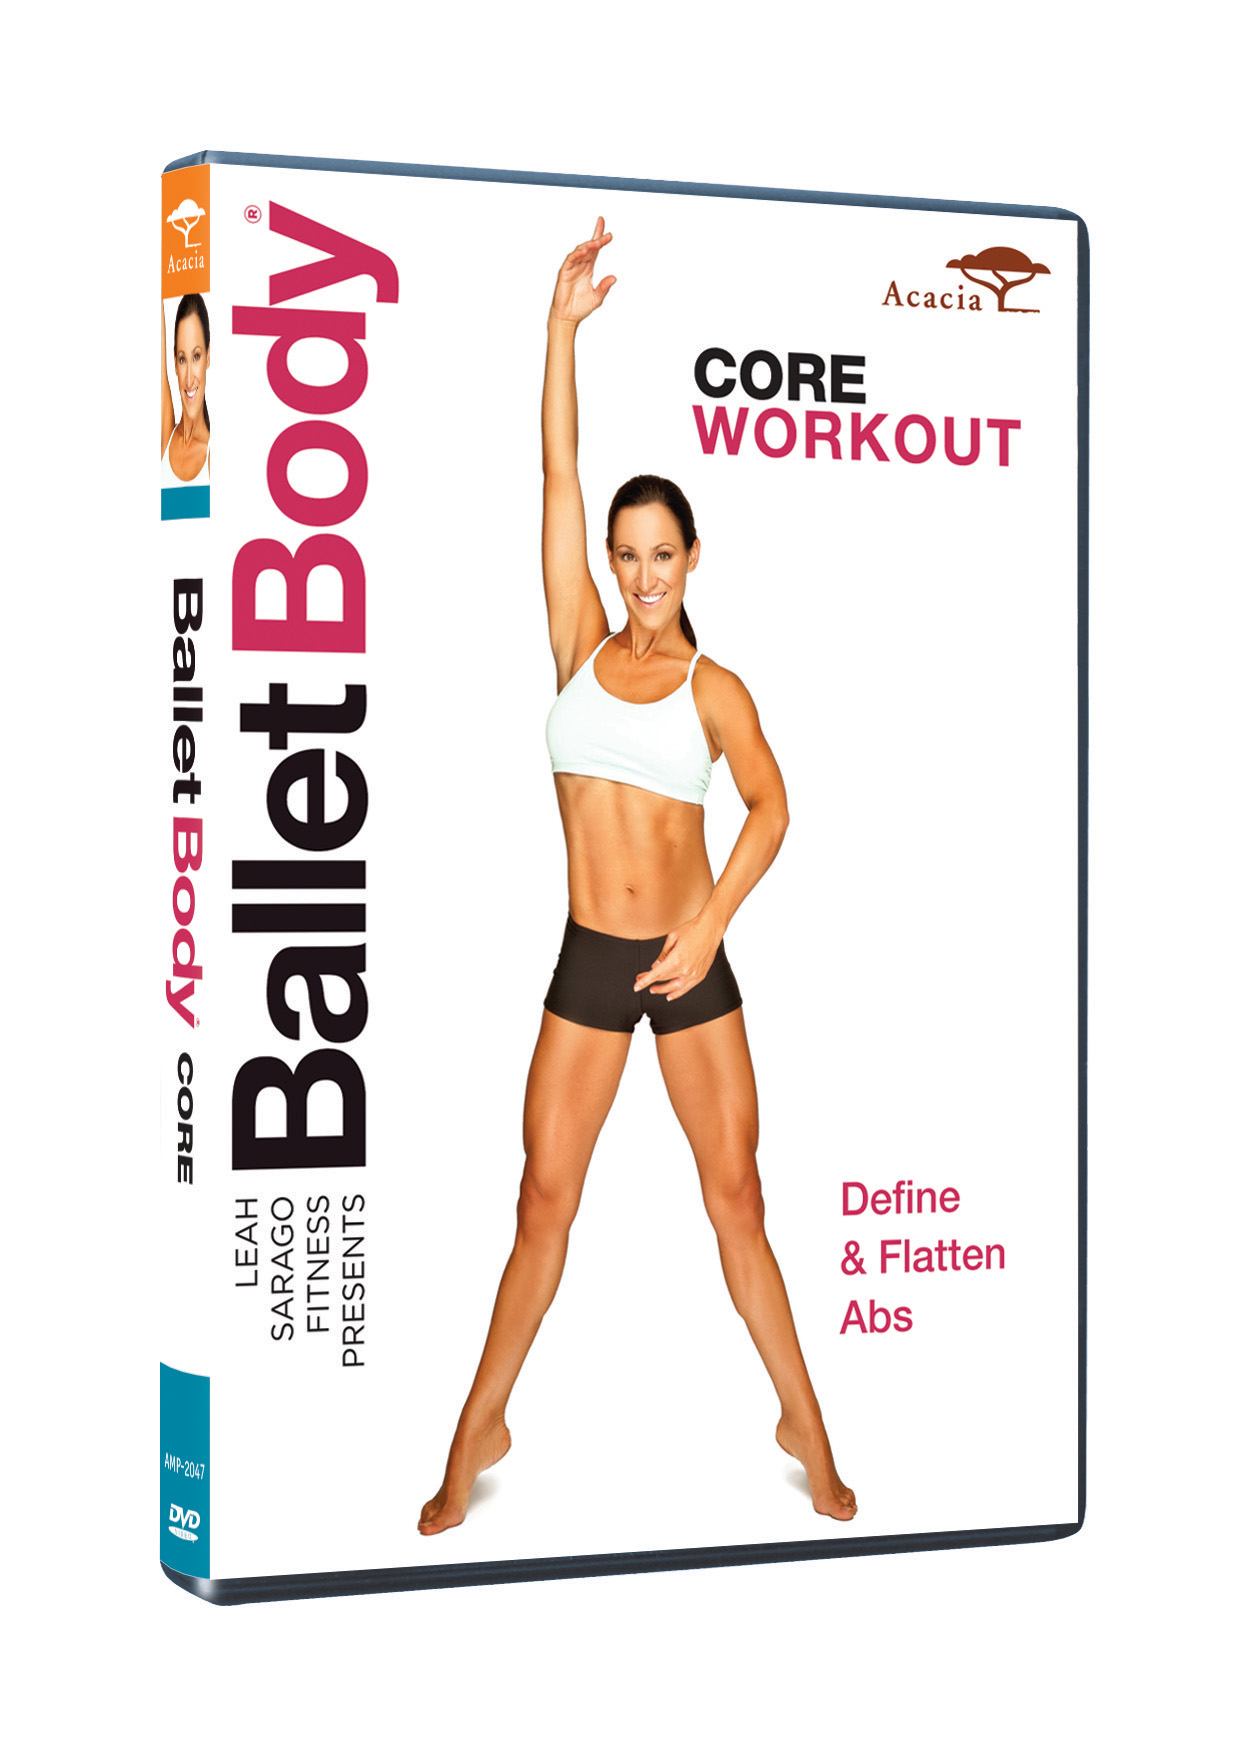 bcc3a25d5a6f6 Men s Health magazine Archives - Brooklyn Fit ChickBrooklyn Fit Chick